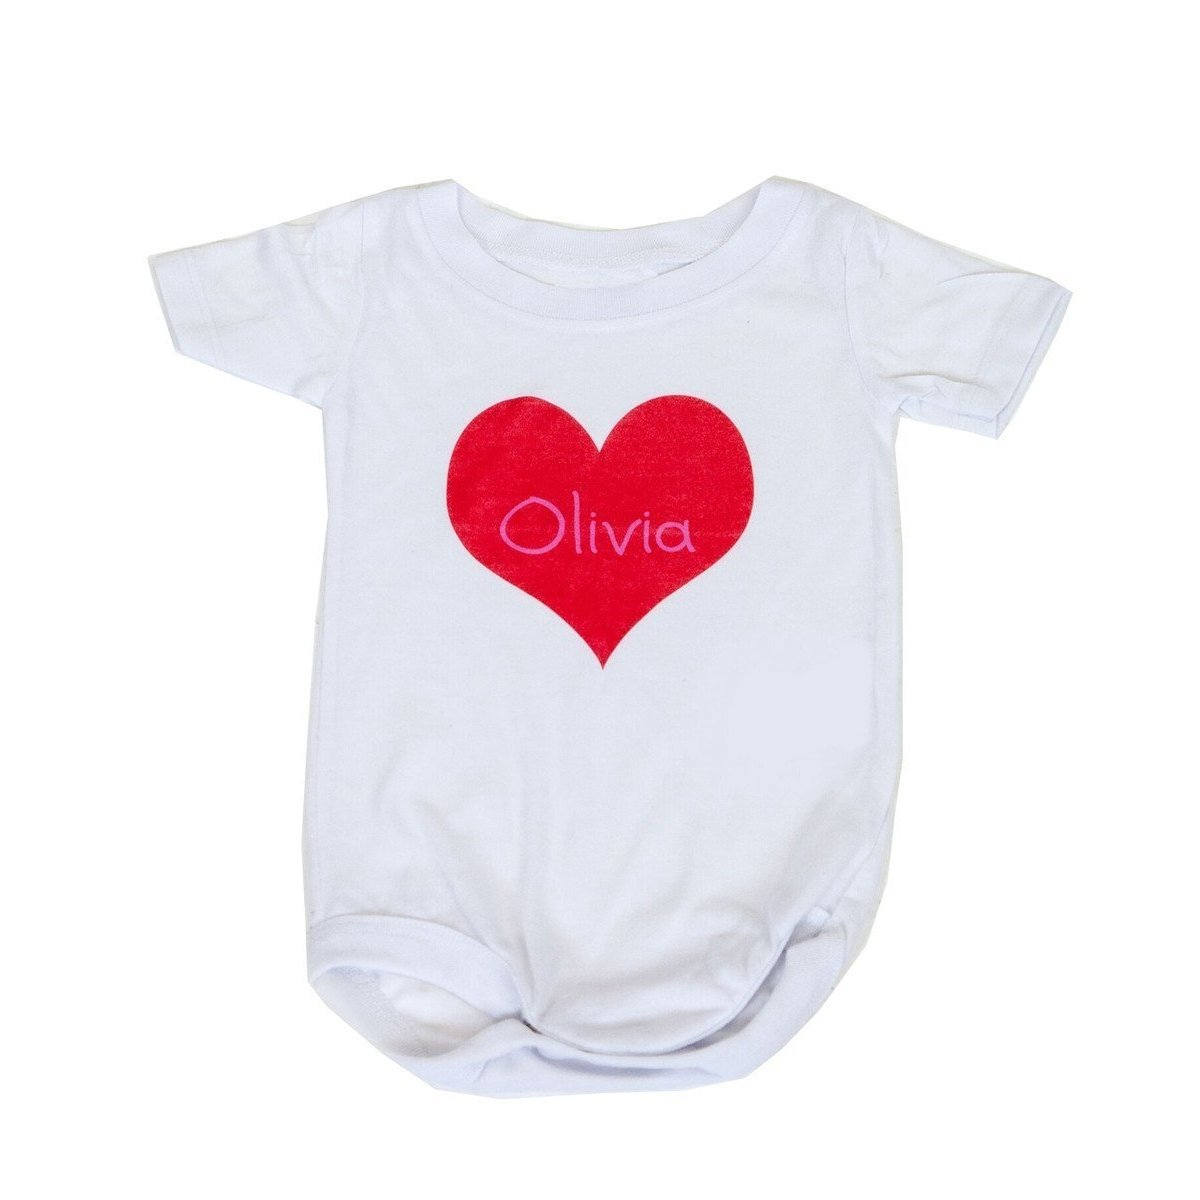 Heart & Name Personalized Onesie-Onesie-Butterscotch Blankees-Jack and Jill Boutique